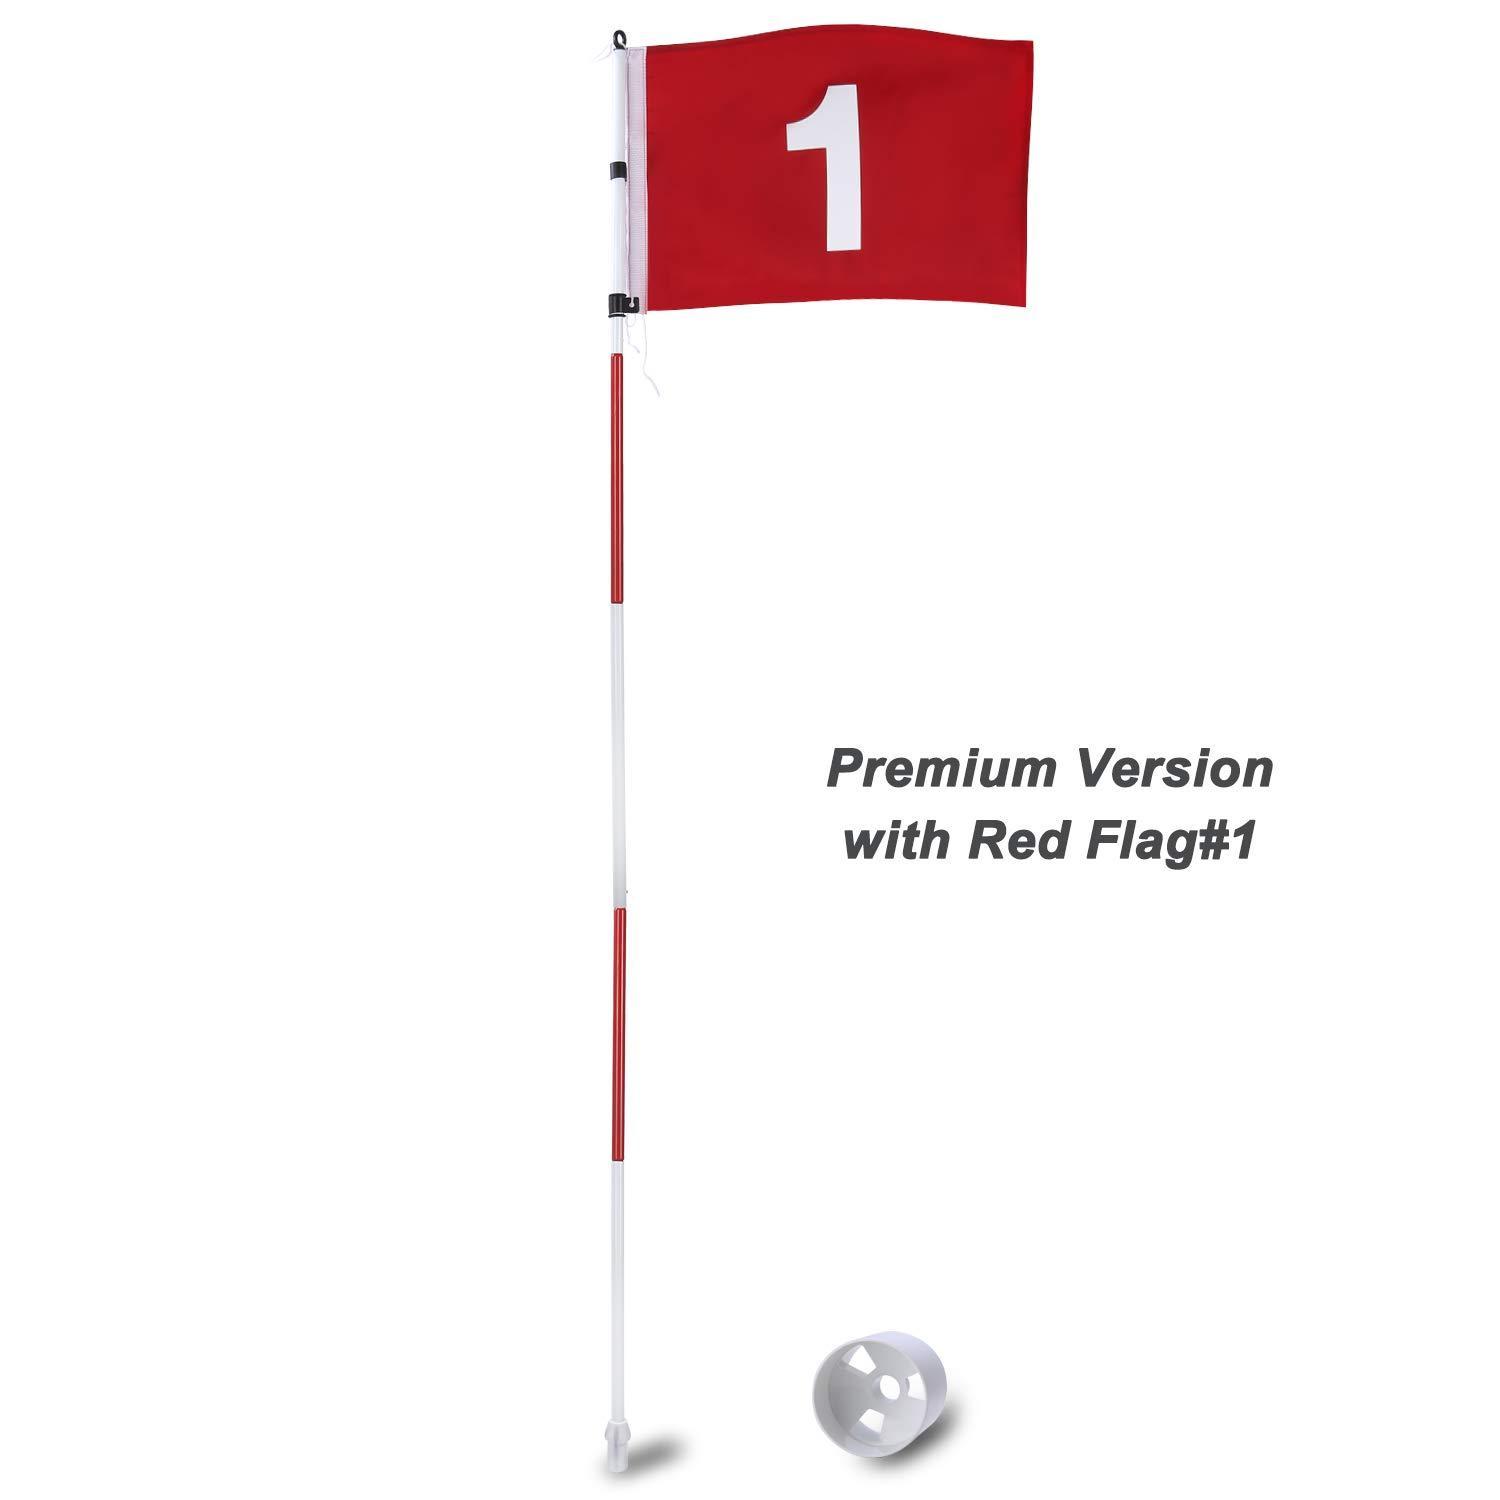 KINGTOP Upgraded Professional Portable Golf Pole Flags, Practice Putting Green Flagstick Hole Cup Set, Indoor/Outdoor, 5-Section Design, Solid Red Flag Numbered #1, 71-inch by KINGTOP